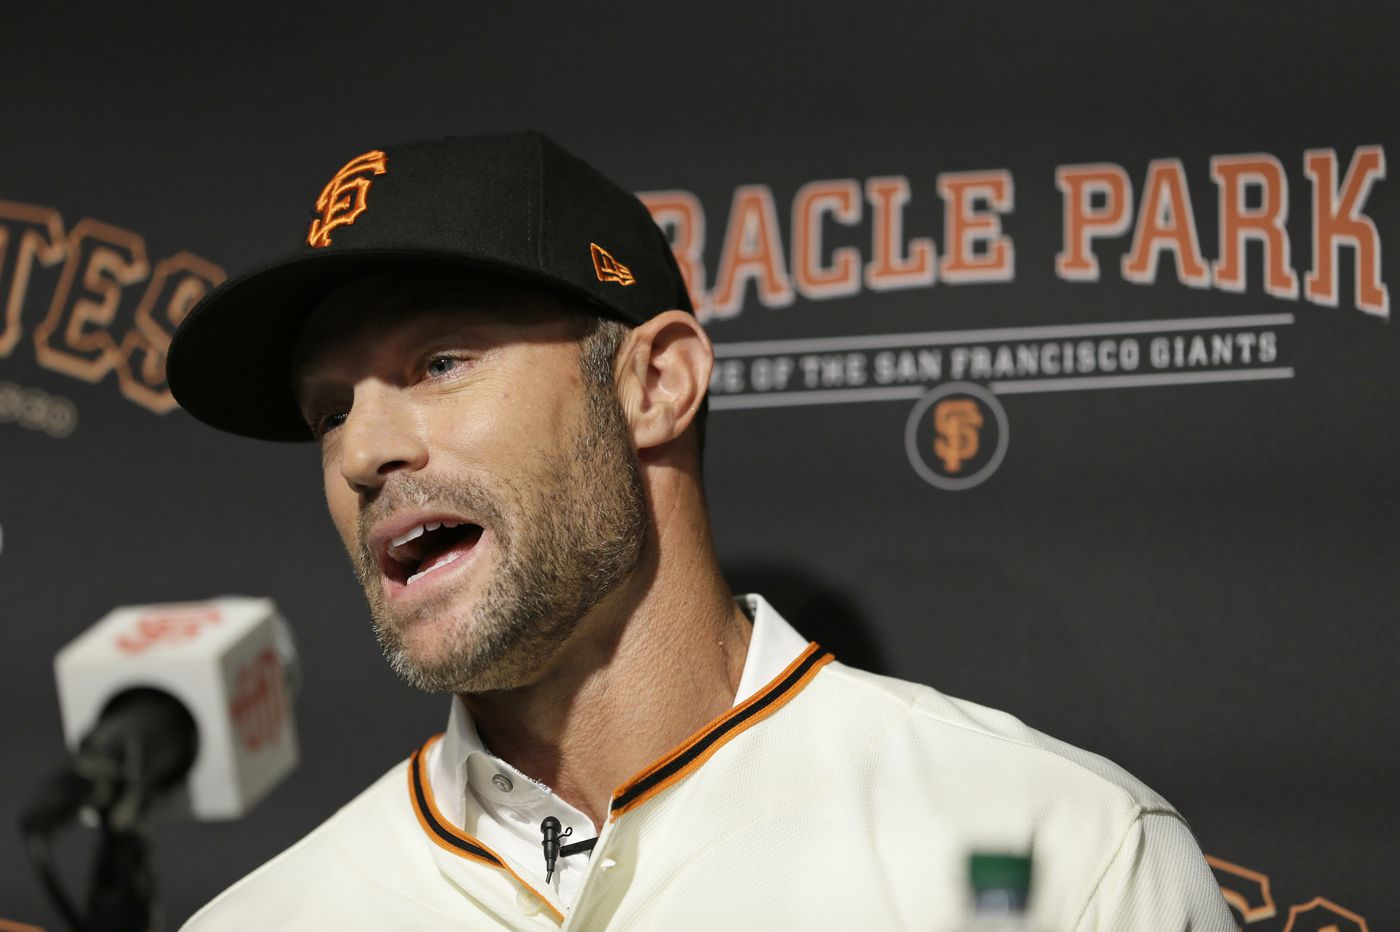 Gabe Kapler forced to defend managerial record, handling of 2015 incident with Dodgers in introductory grilling as Giants manager